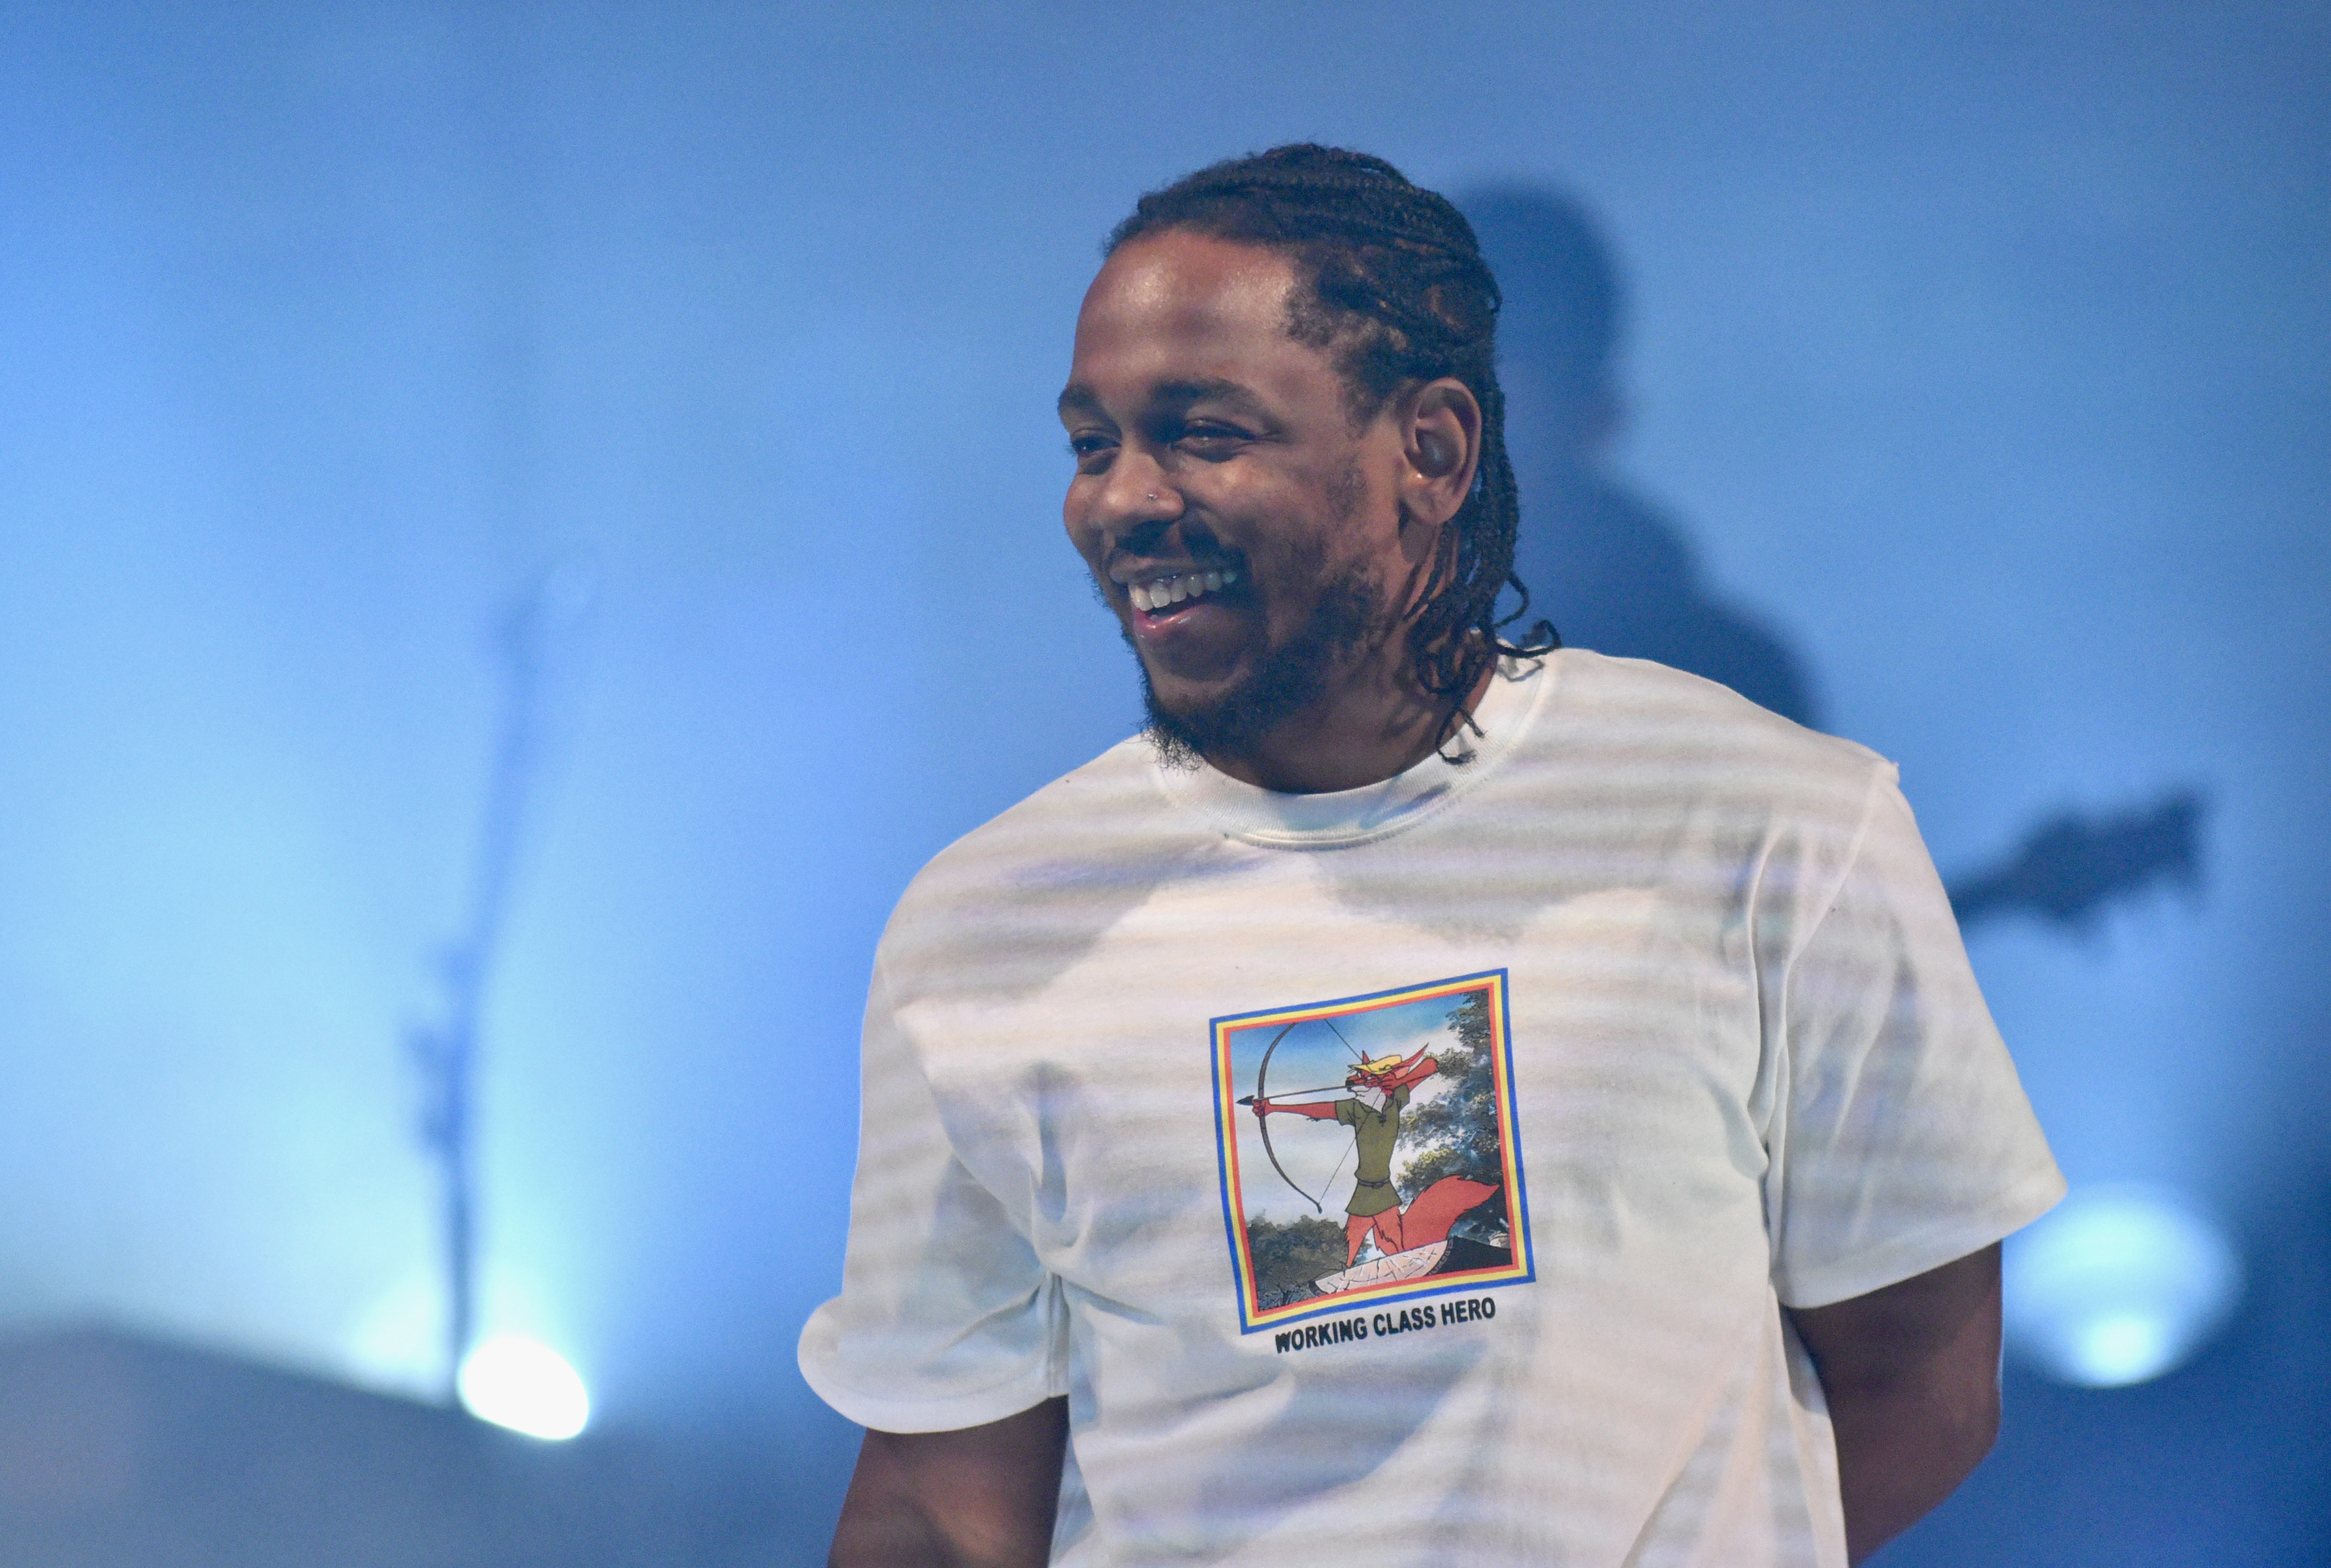 Kendrick Lamar might be hinting that his new studio album is on its way